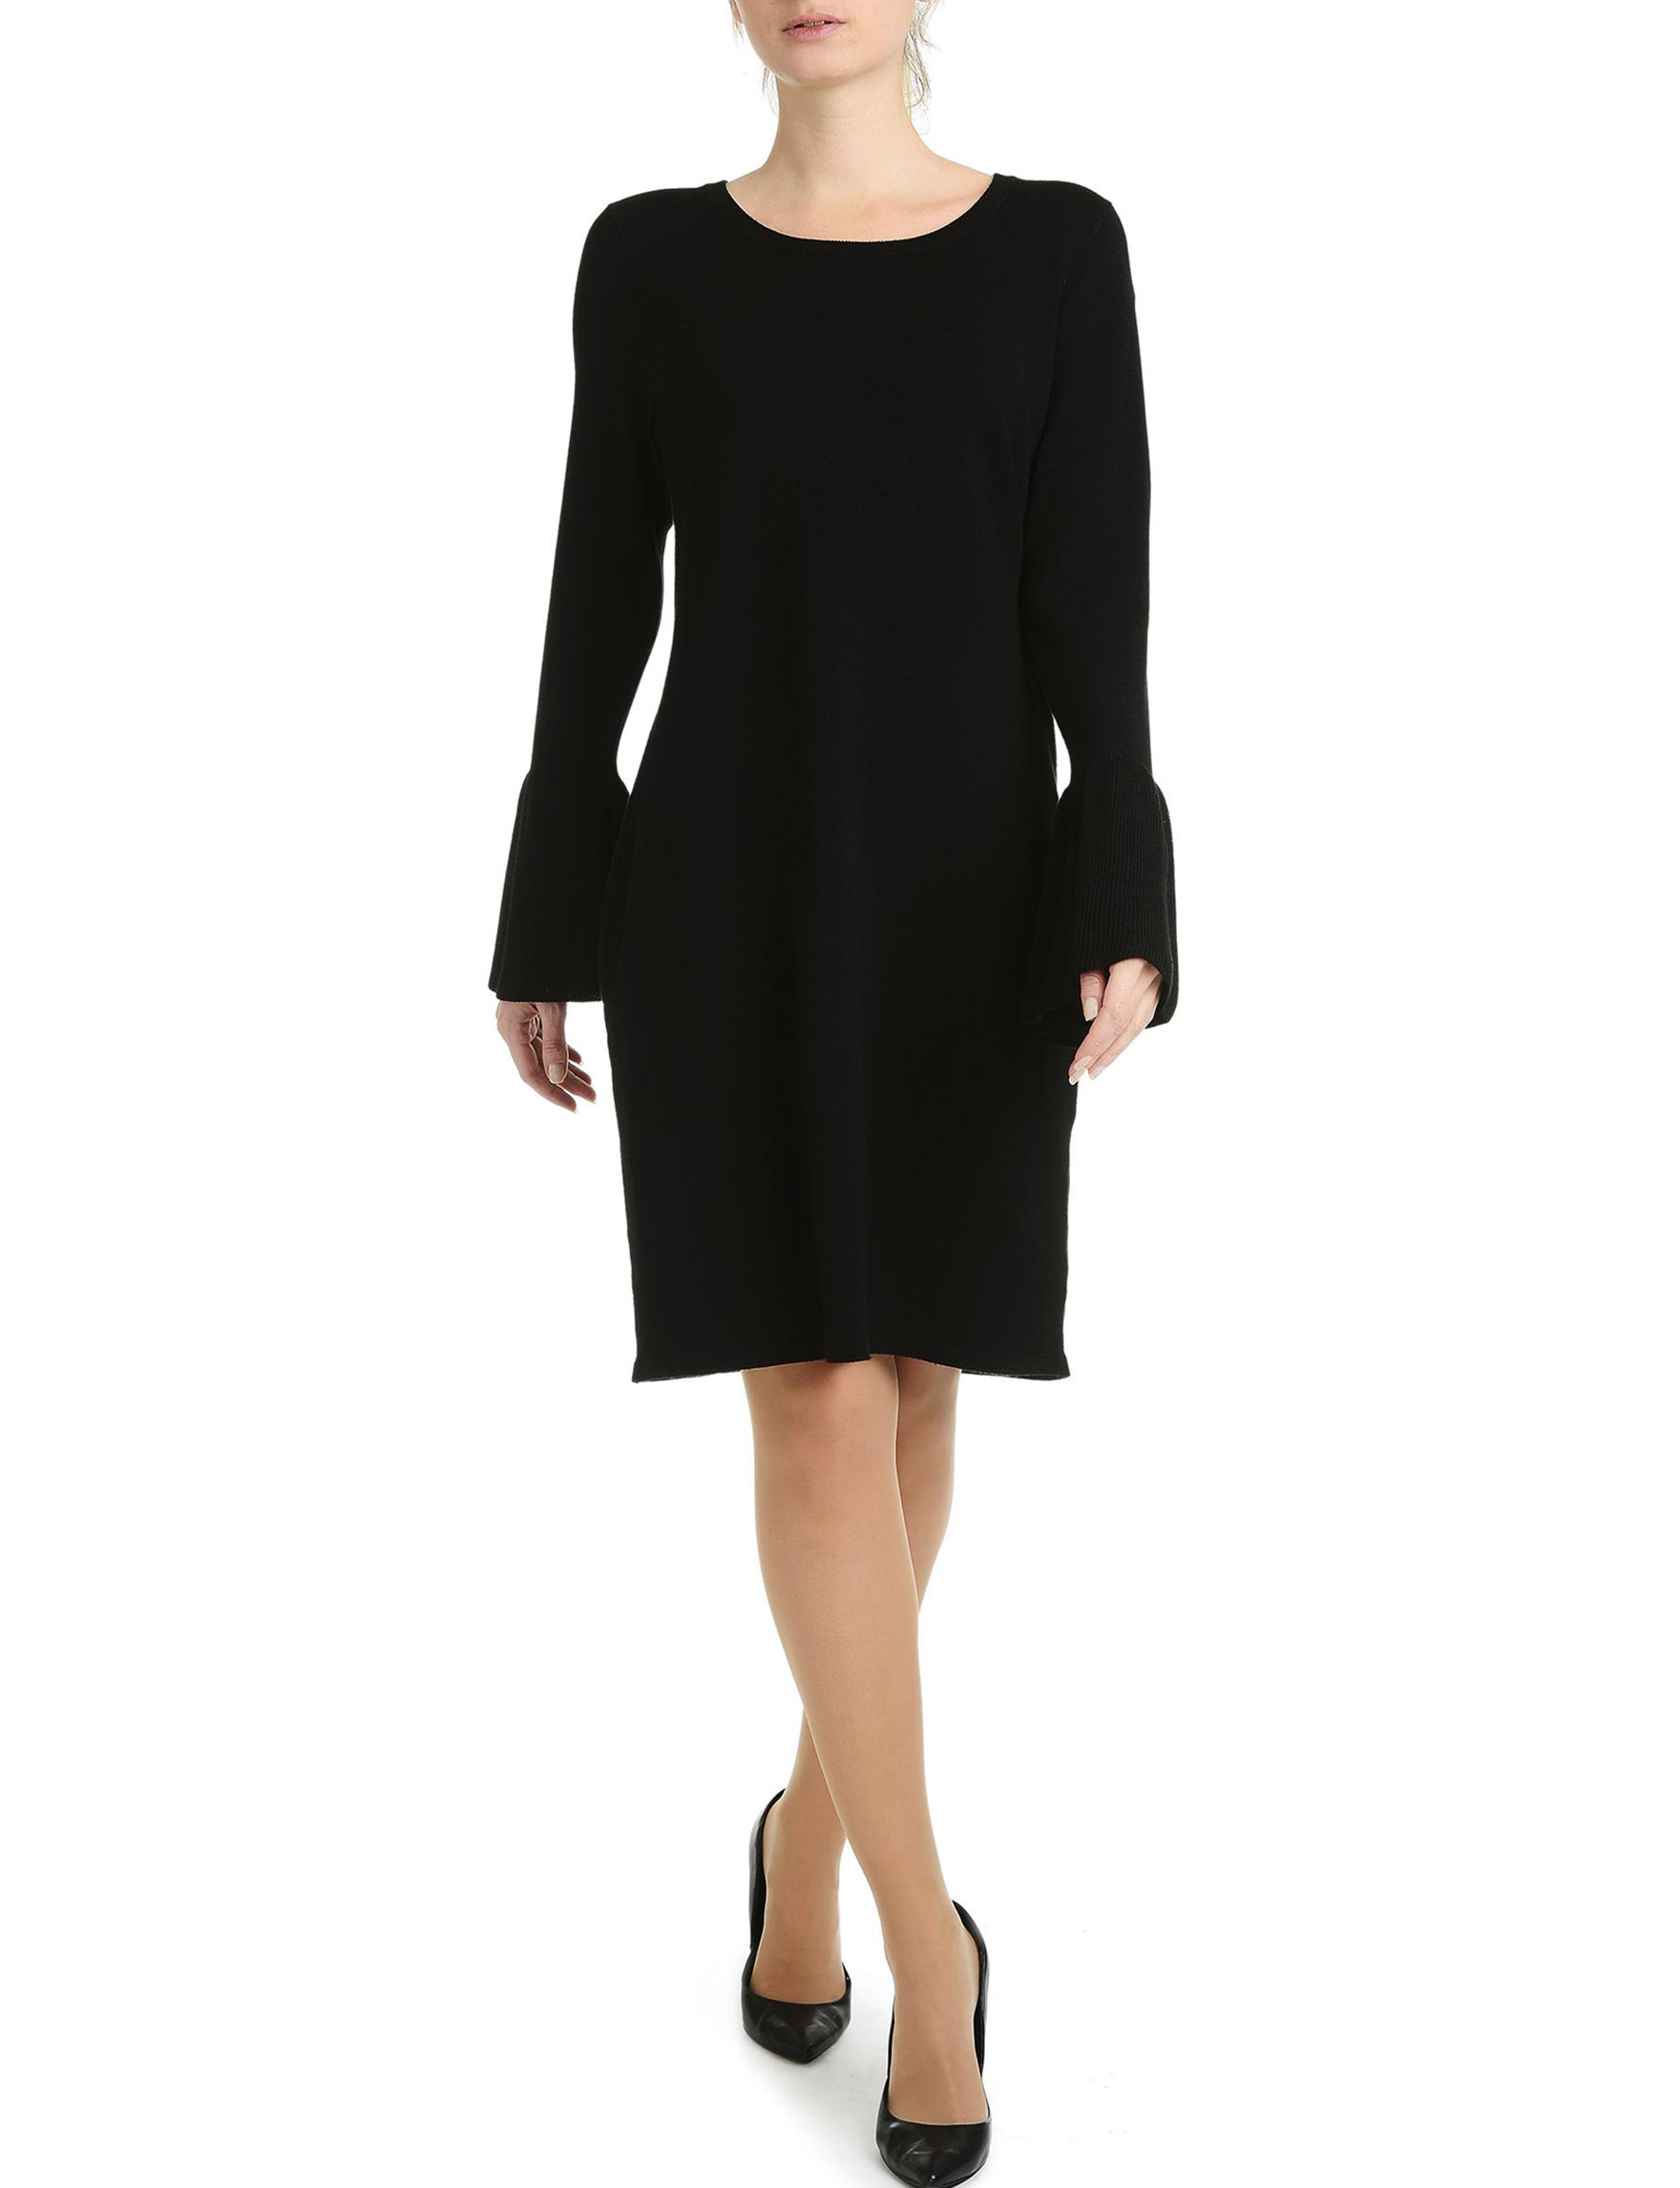 NY Collection Black Cocktail & Party Sweater Dresses